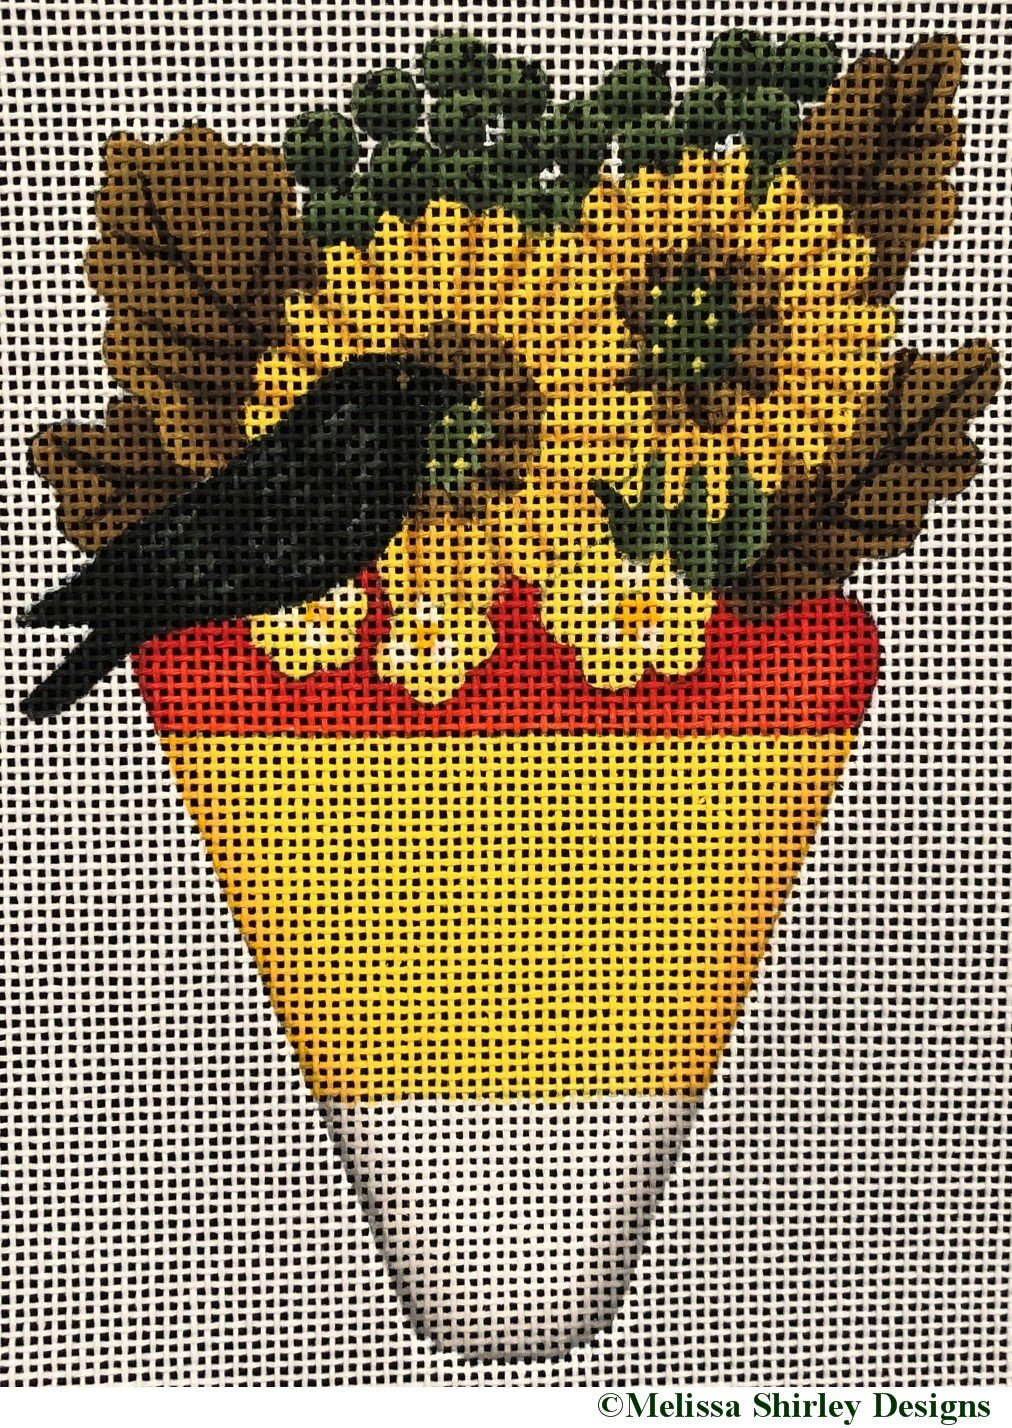 2236A - BLACK BIRD ON CANDY CORN